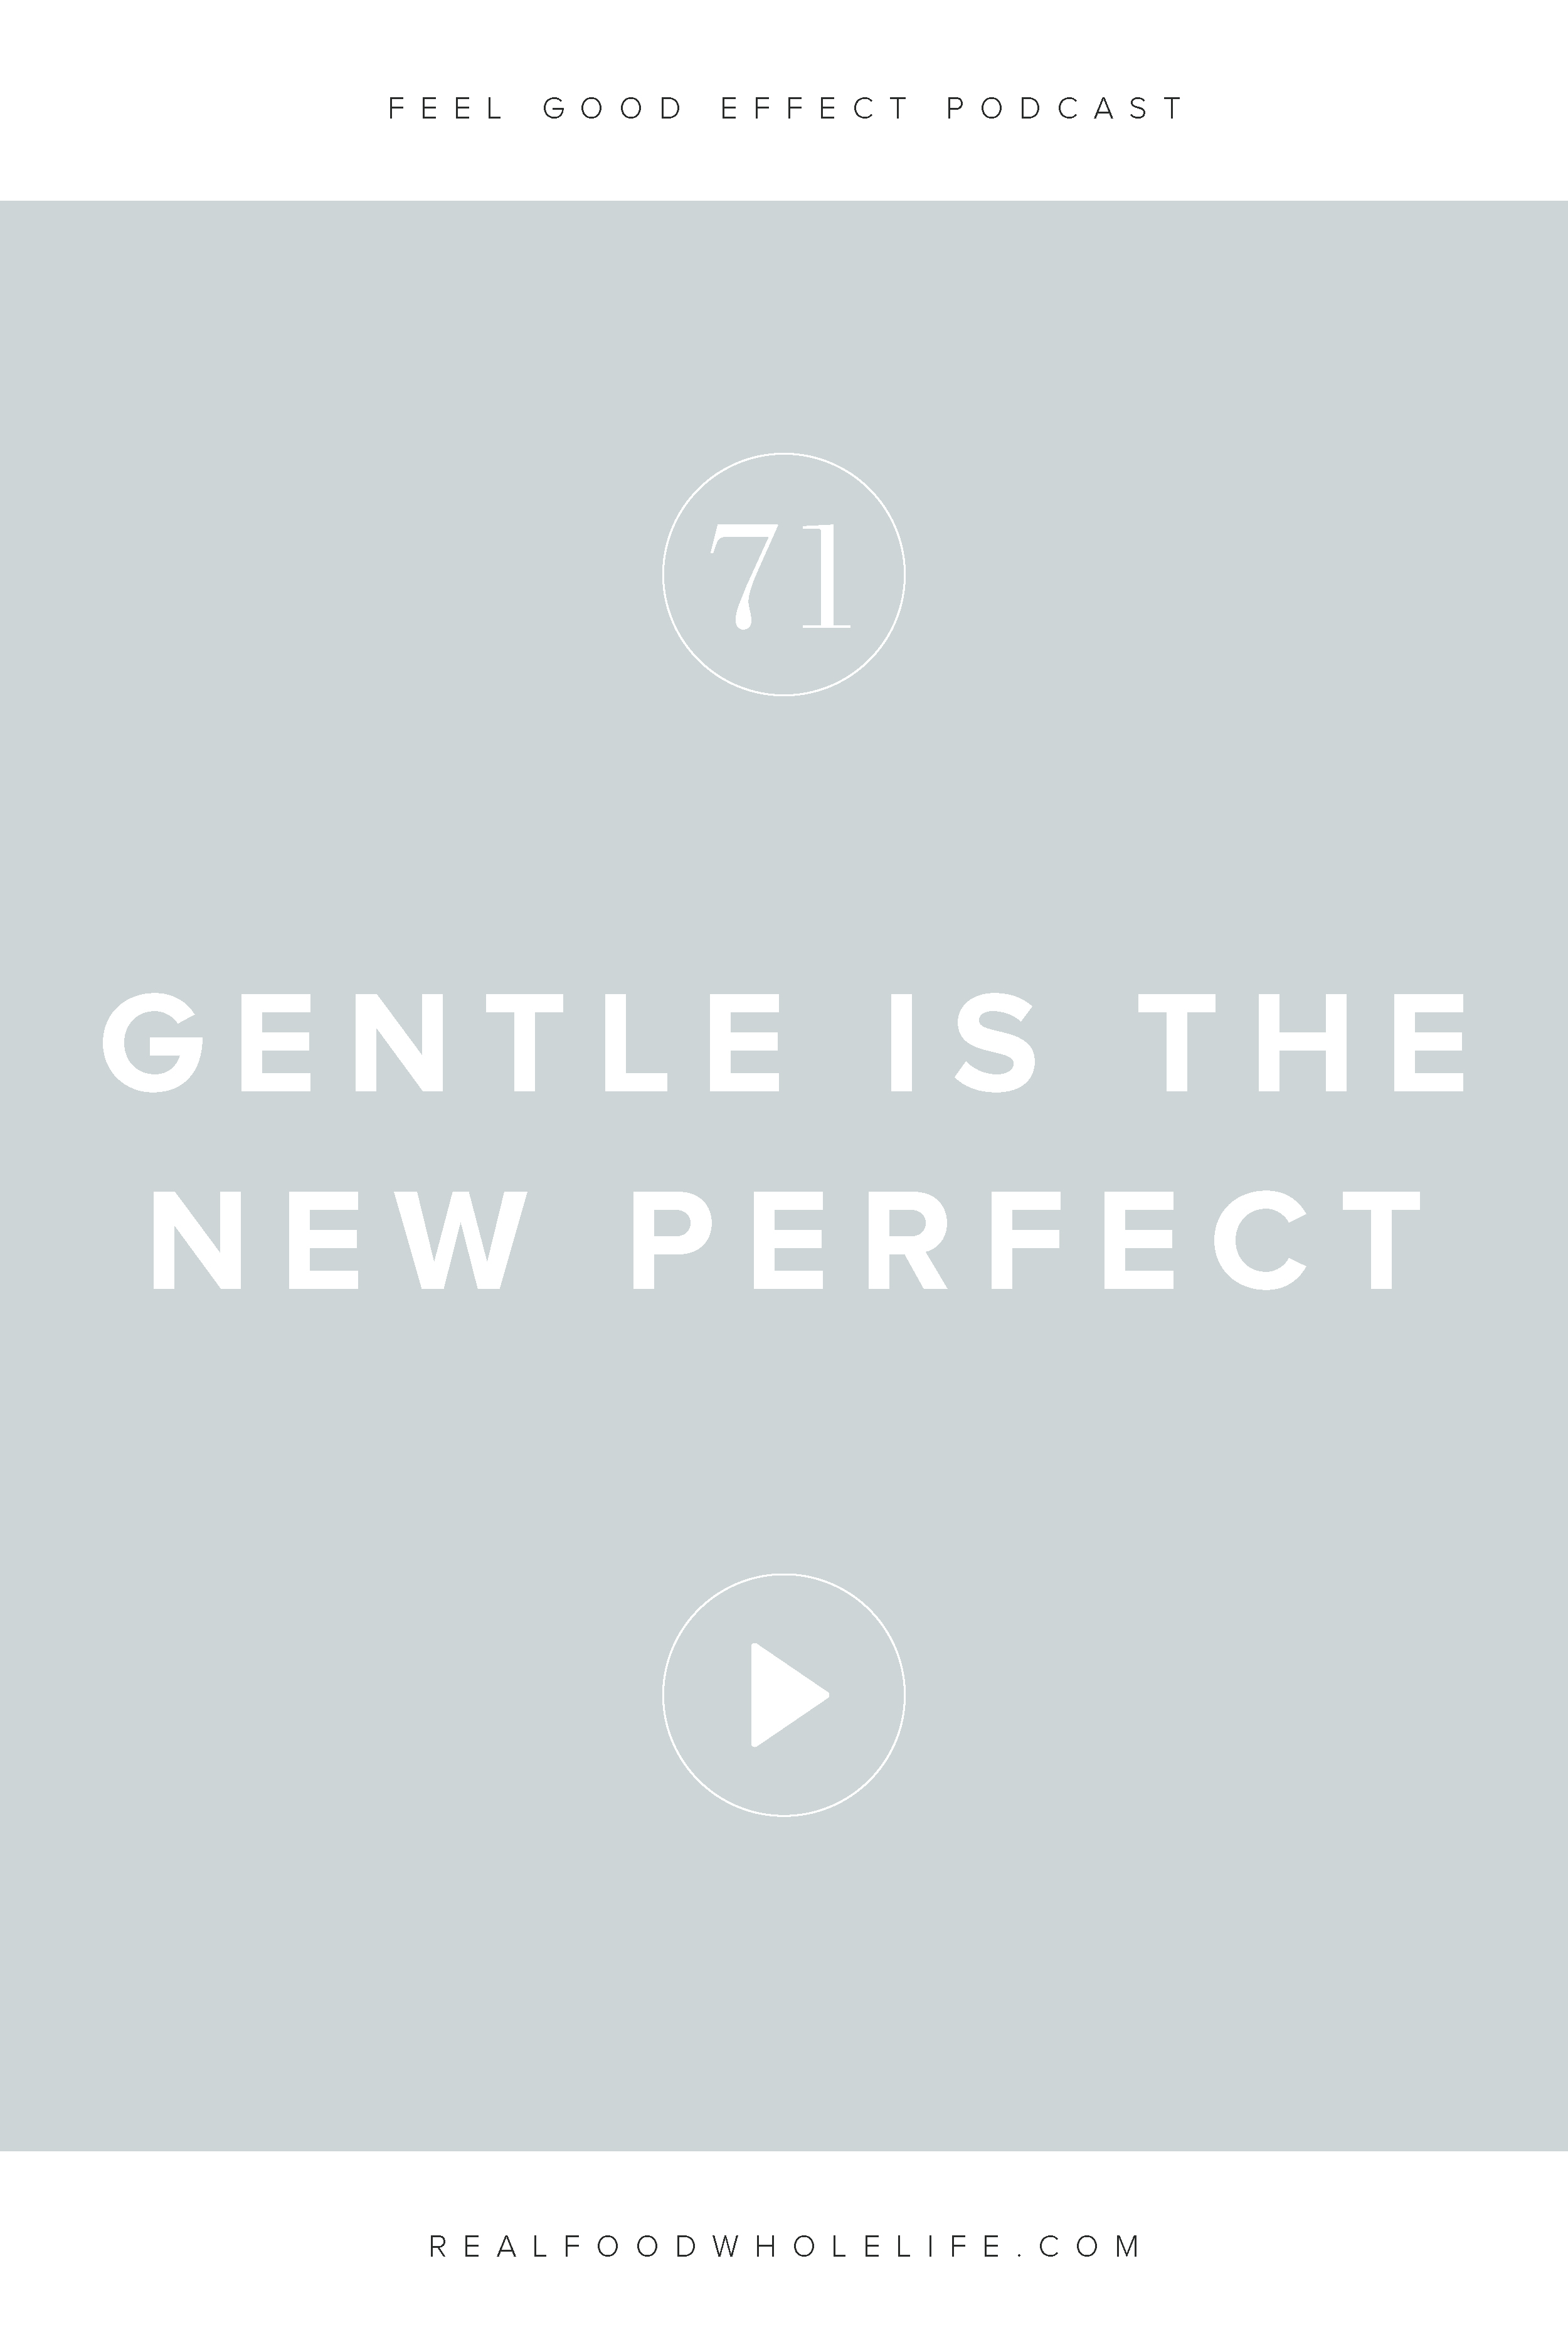 Gentle is the New Perfect, and episode from the Feel Good Effect podcast. This episode is all about the gentle-wellness revolution, a movement about flipping the script from comparison, all-or-nothing, and perfectionism thinking, to a gentle mindset. #realfoodwholelife #feelgoodeffectpodcast #personaldevelopment #selfcare #selfimprovement #podcast #wellnesspodcast #healthpodcast  #wellness #wellnesspodcast  #healthandwellness #healthandwellnesspodcast #gentle #perfection